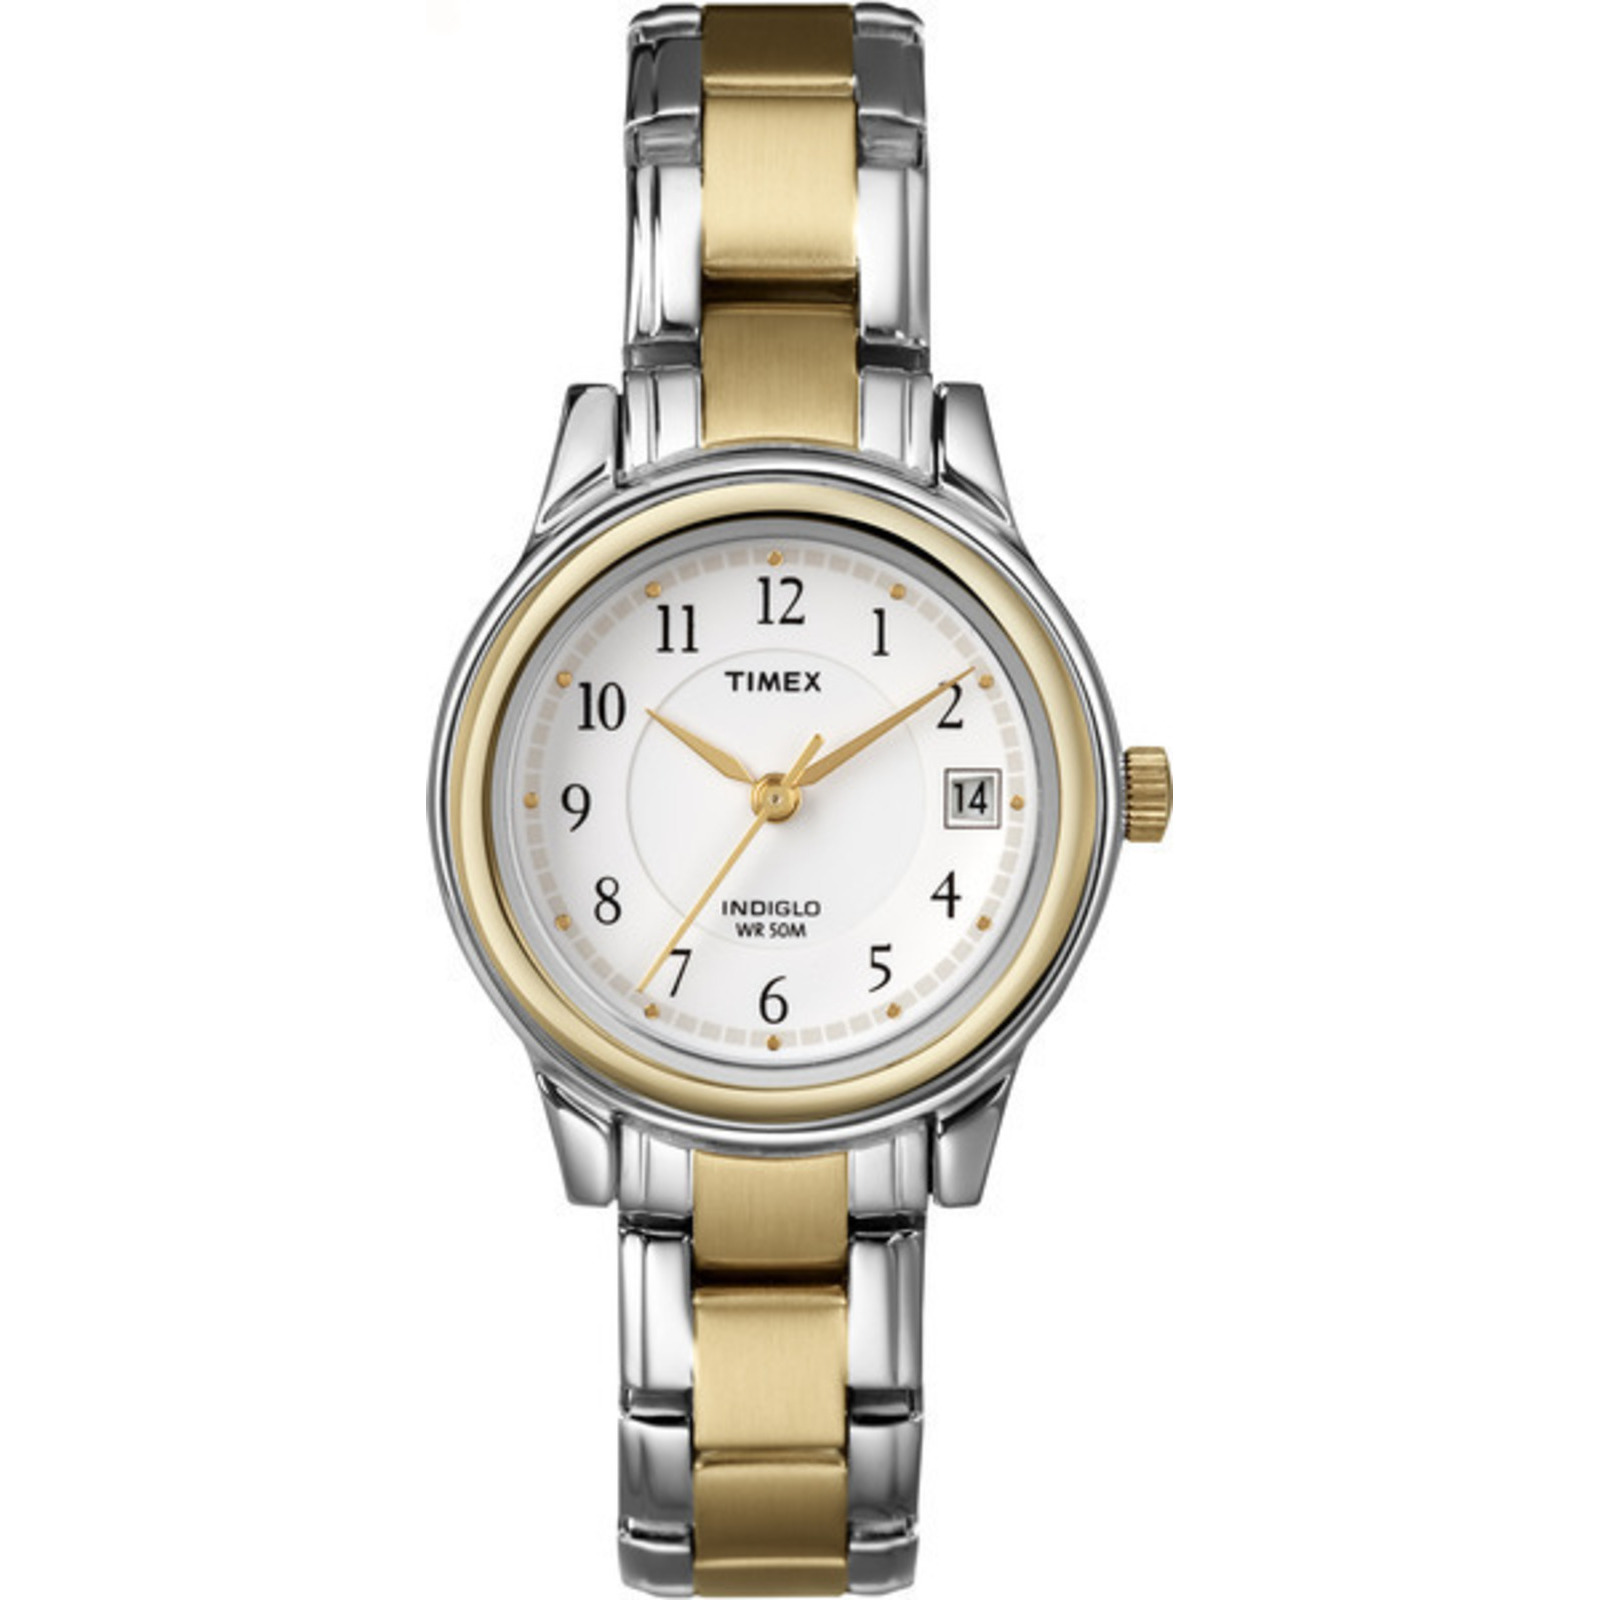 Dress watch stainless steel bracelet case white dial womens timex indiglo ebay for Indiglo watches